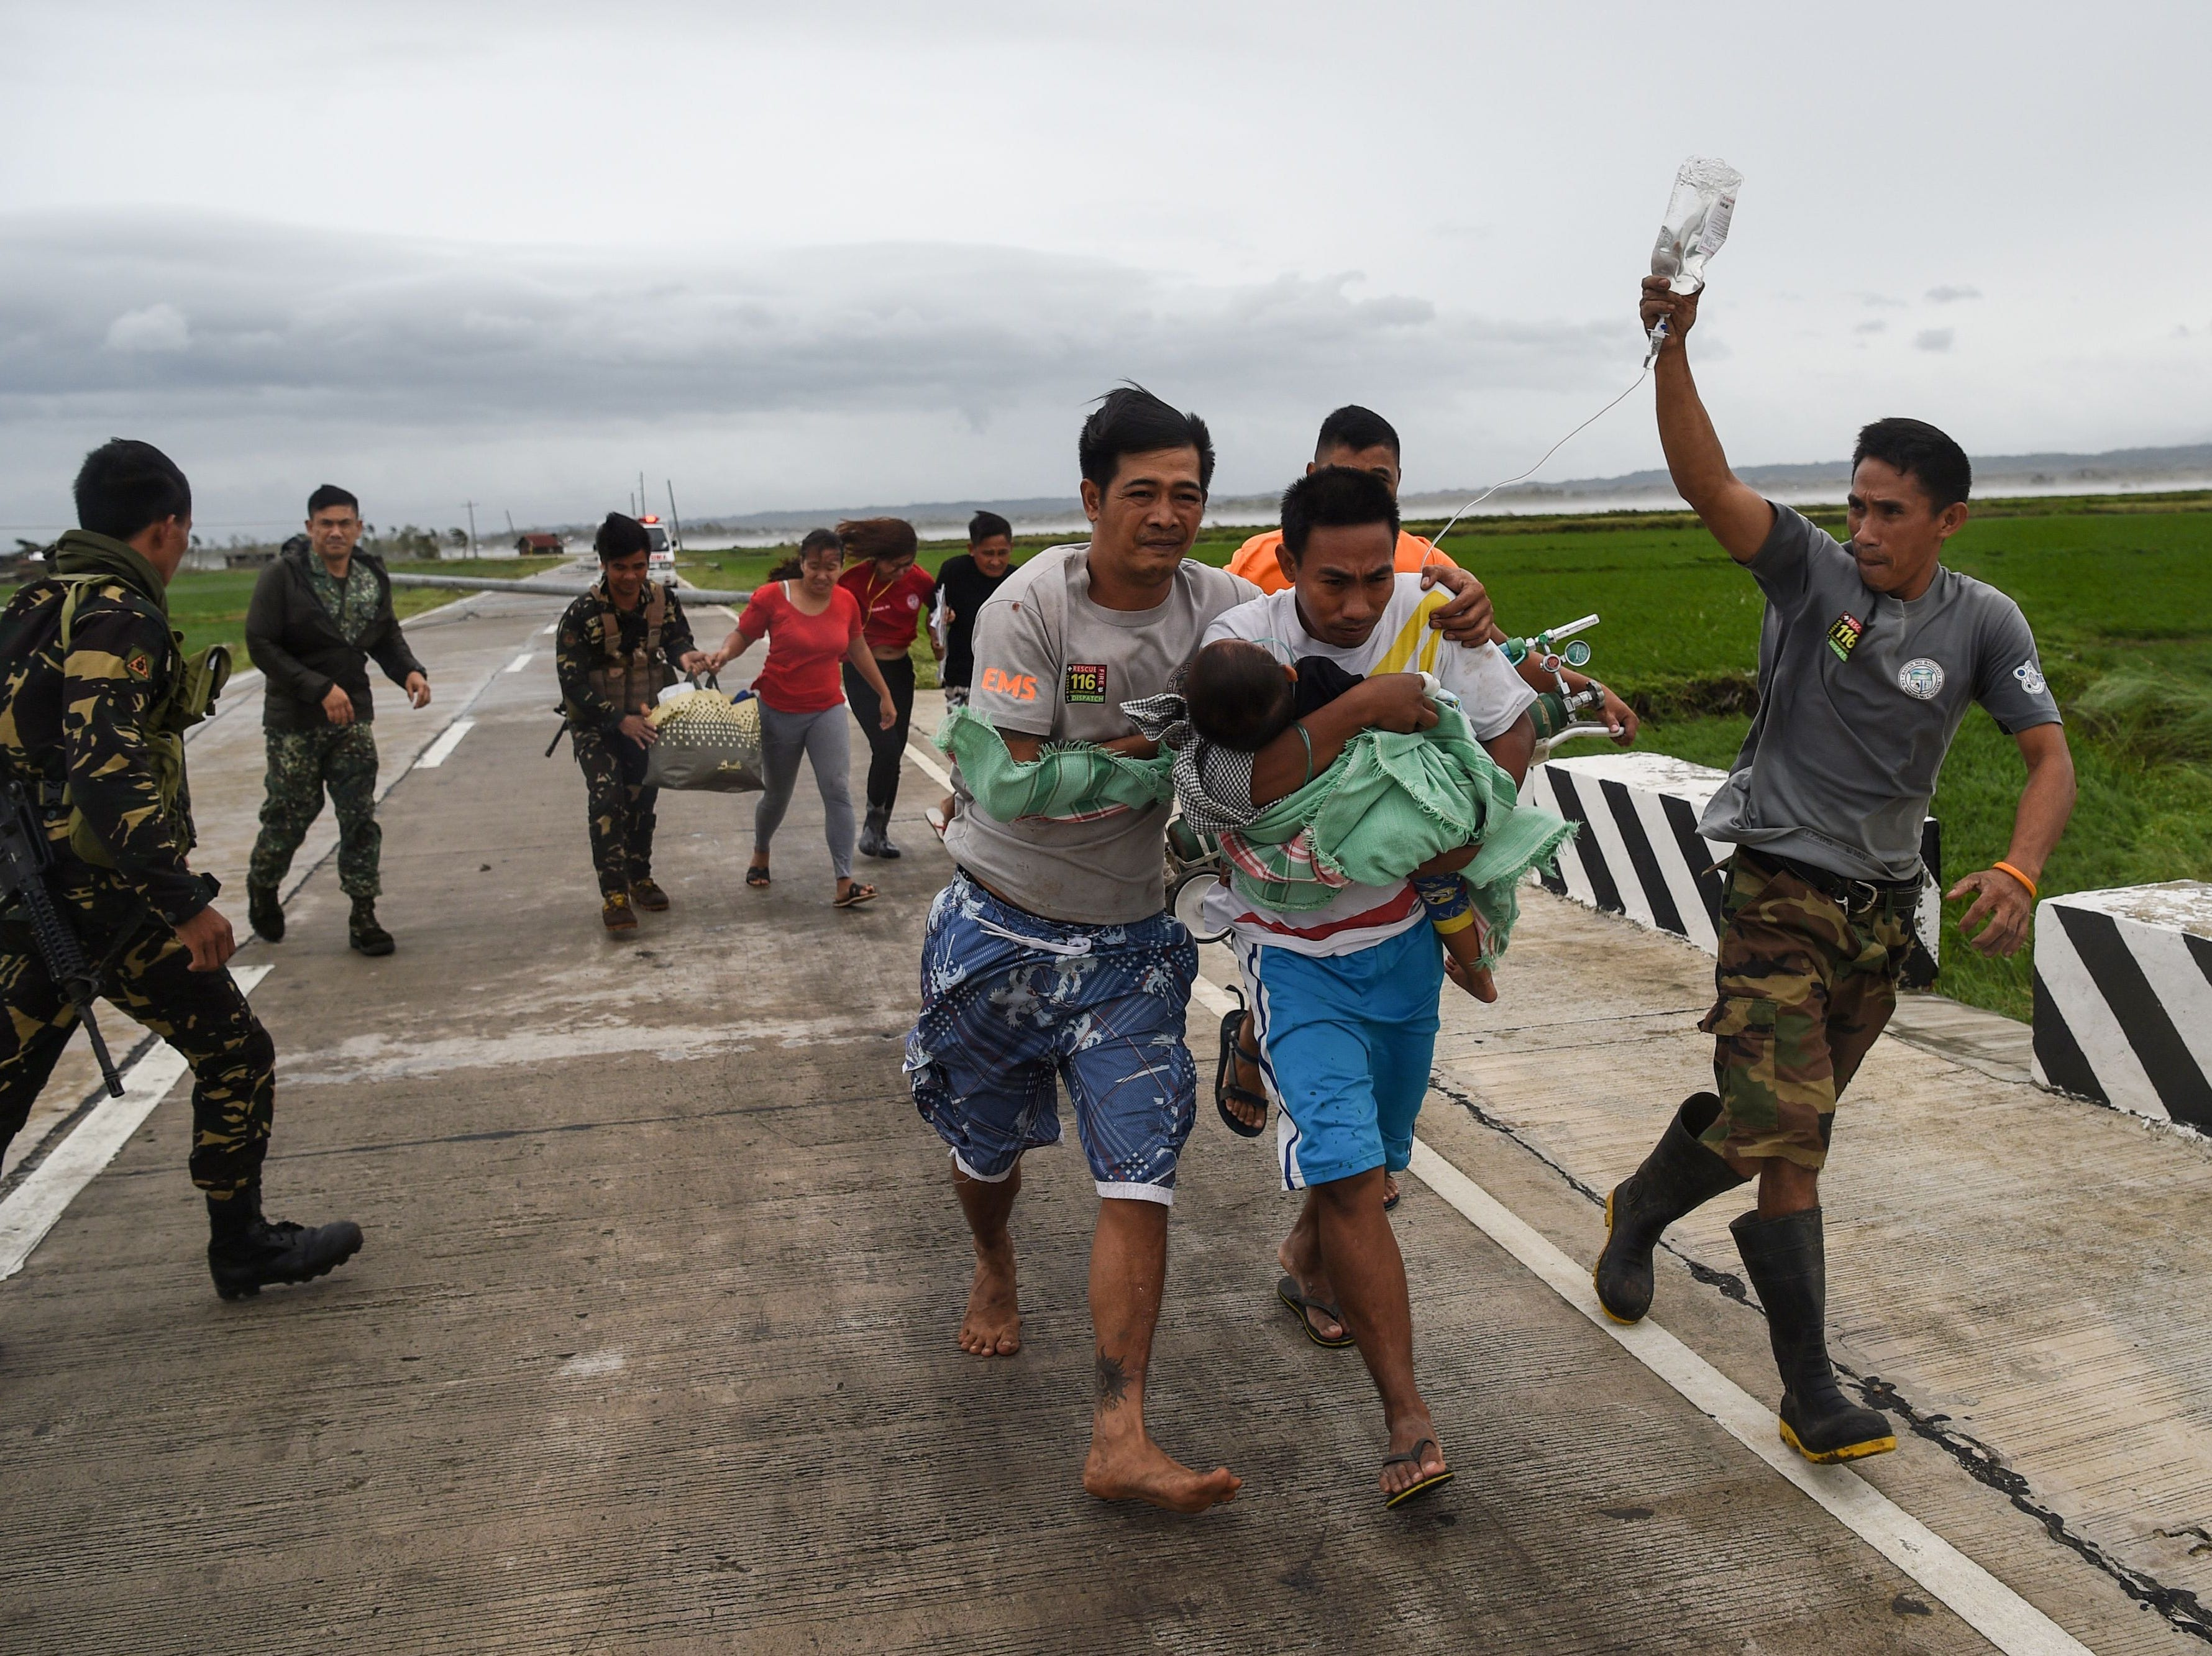 Philippine soldiers assist a family carrying their sick child to a waiting government vehicle after their ambulance failed to make it through a road blocked with fallen tree debris and electric posts toppled by strong winds from Super Typhoon Mangkhut in Baggao, Cagayan province on Sept.15, 2018.